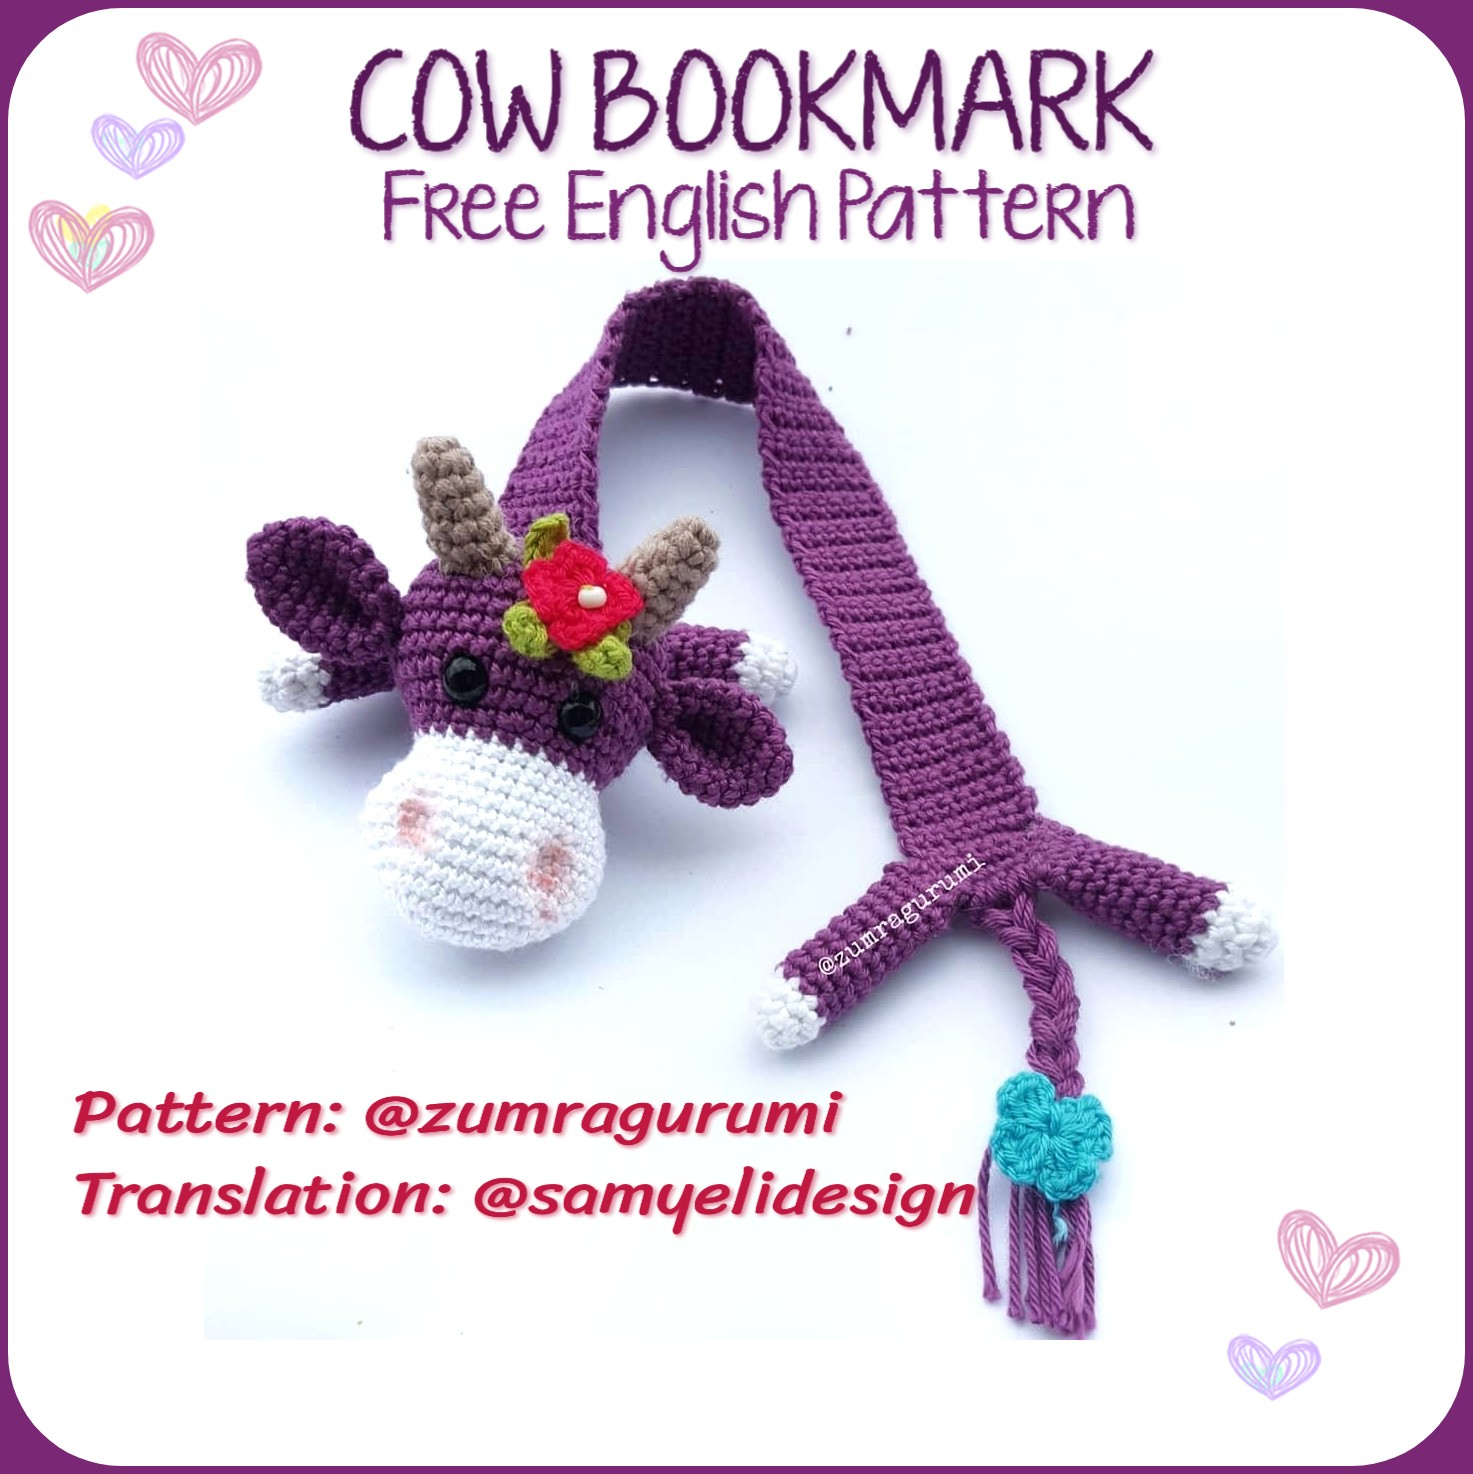 Crochet Mouse Bookmark - Free Pattern | Crochet bookmarks free ... | 1474x1473